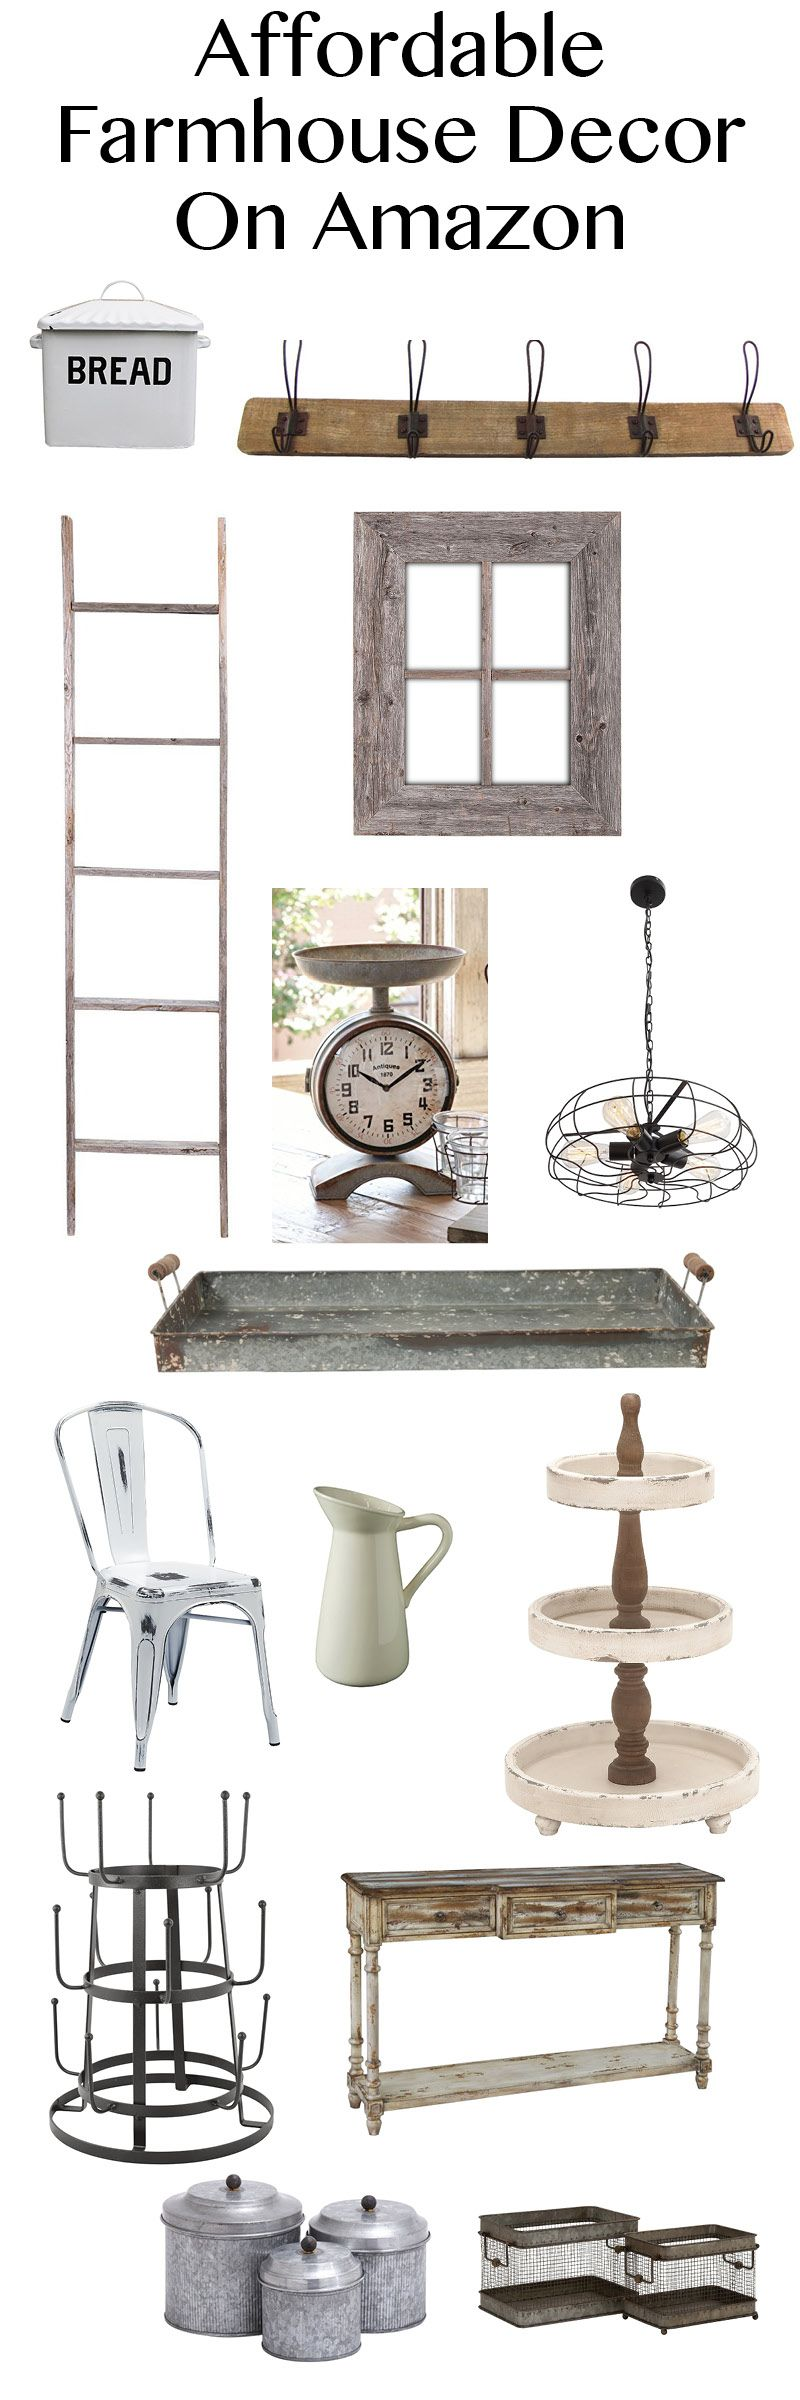 Affordable Farmhouse Decor on Amazon! Tons of great items